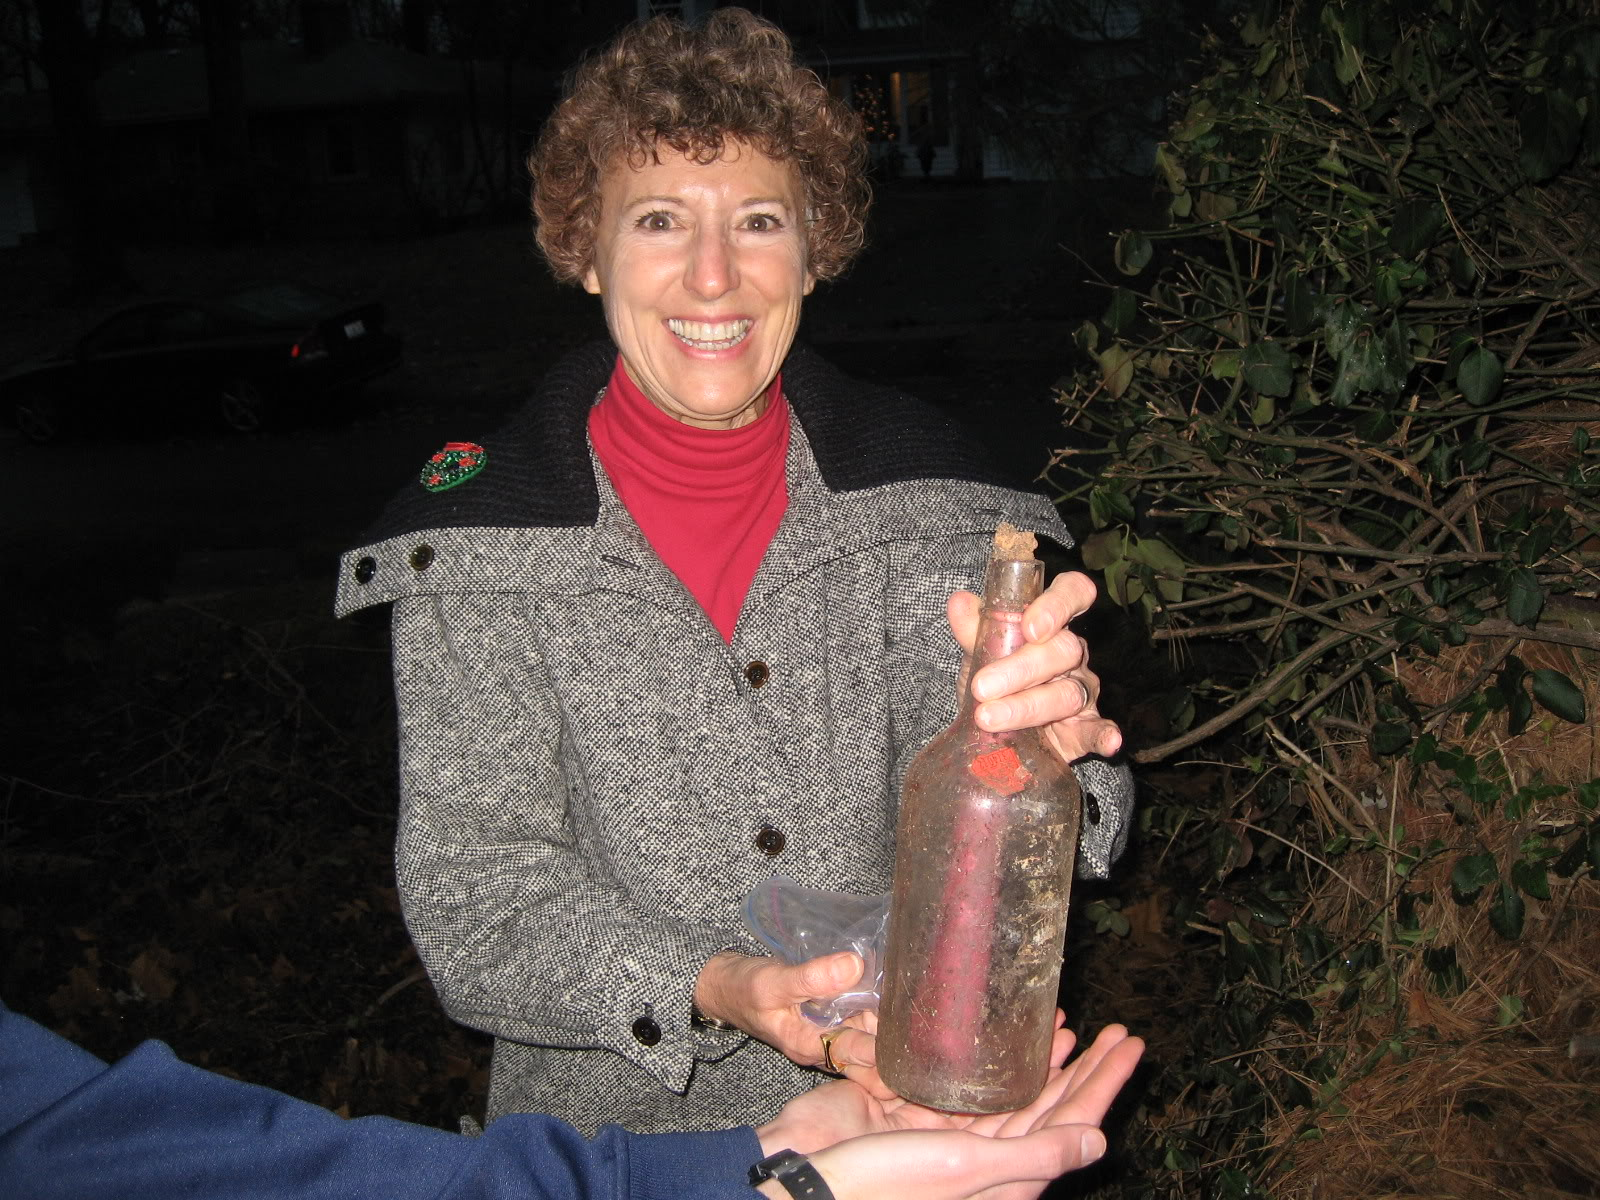 Mom with bottle.